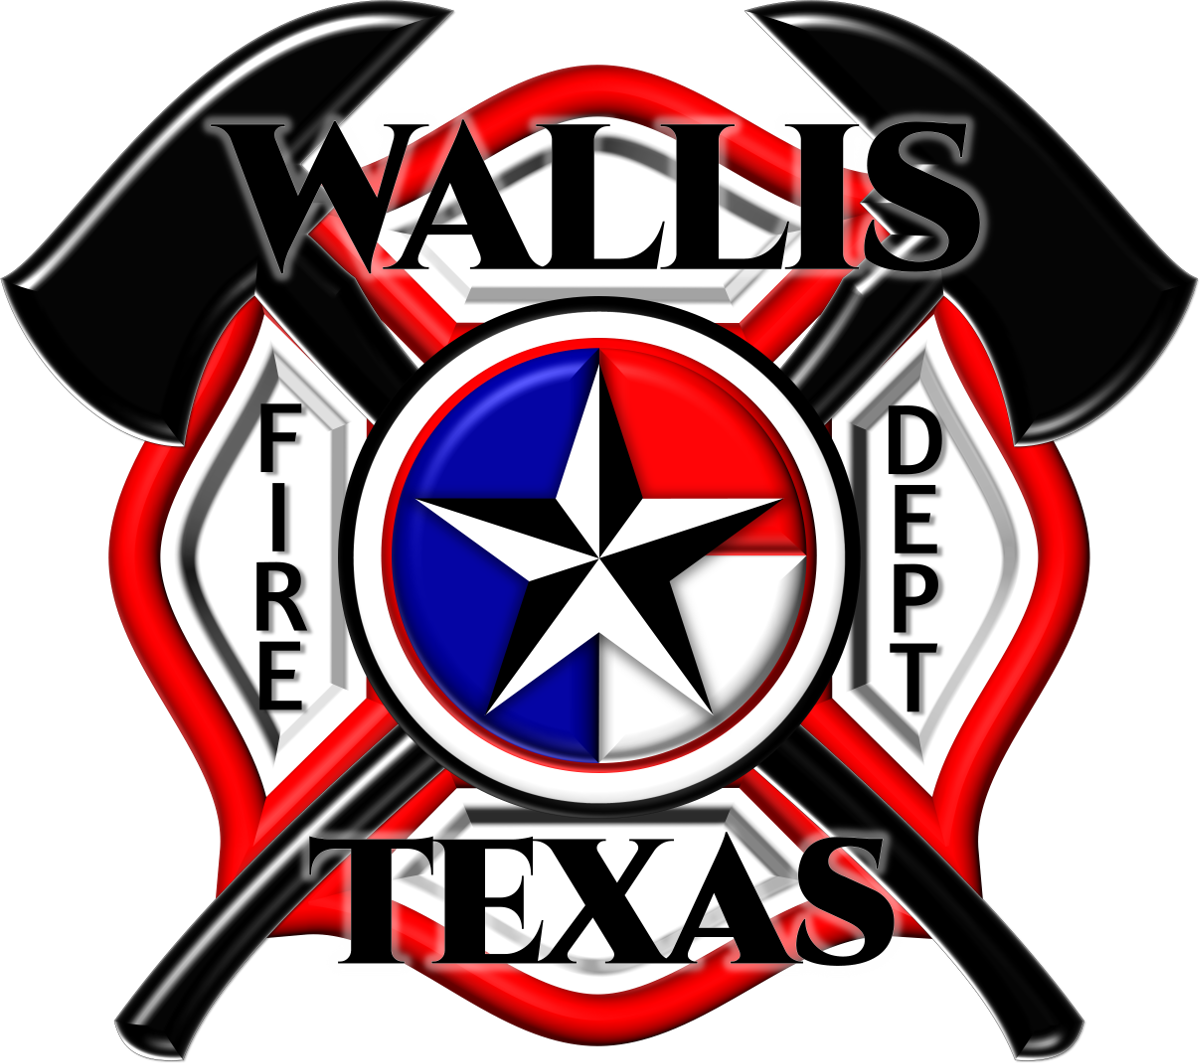 serious masculine fire department logo design for wallis fire rh designcrowd com fire department graphic design fire department logo design